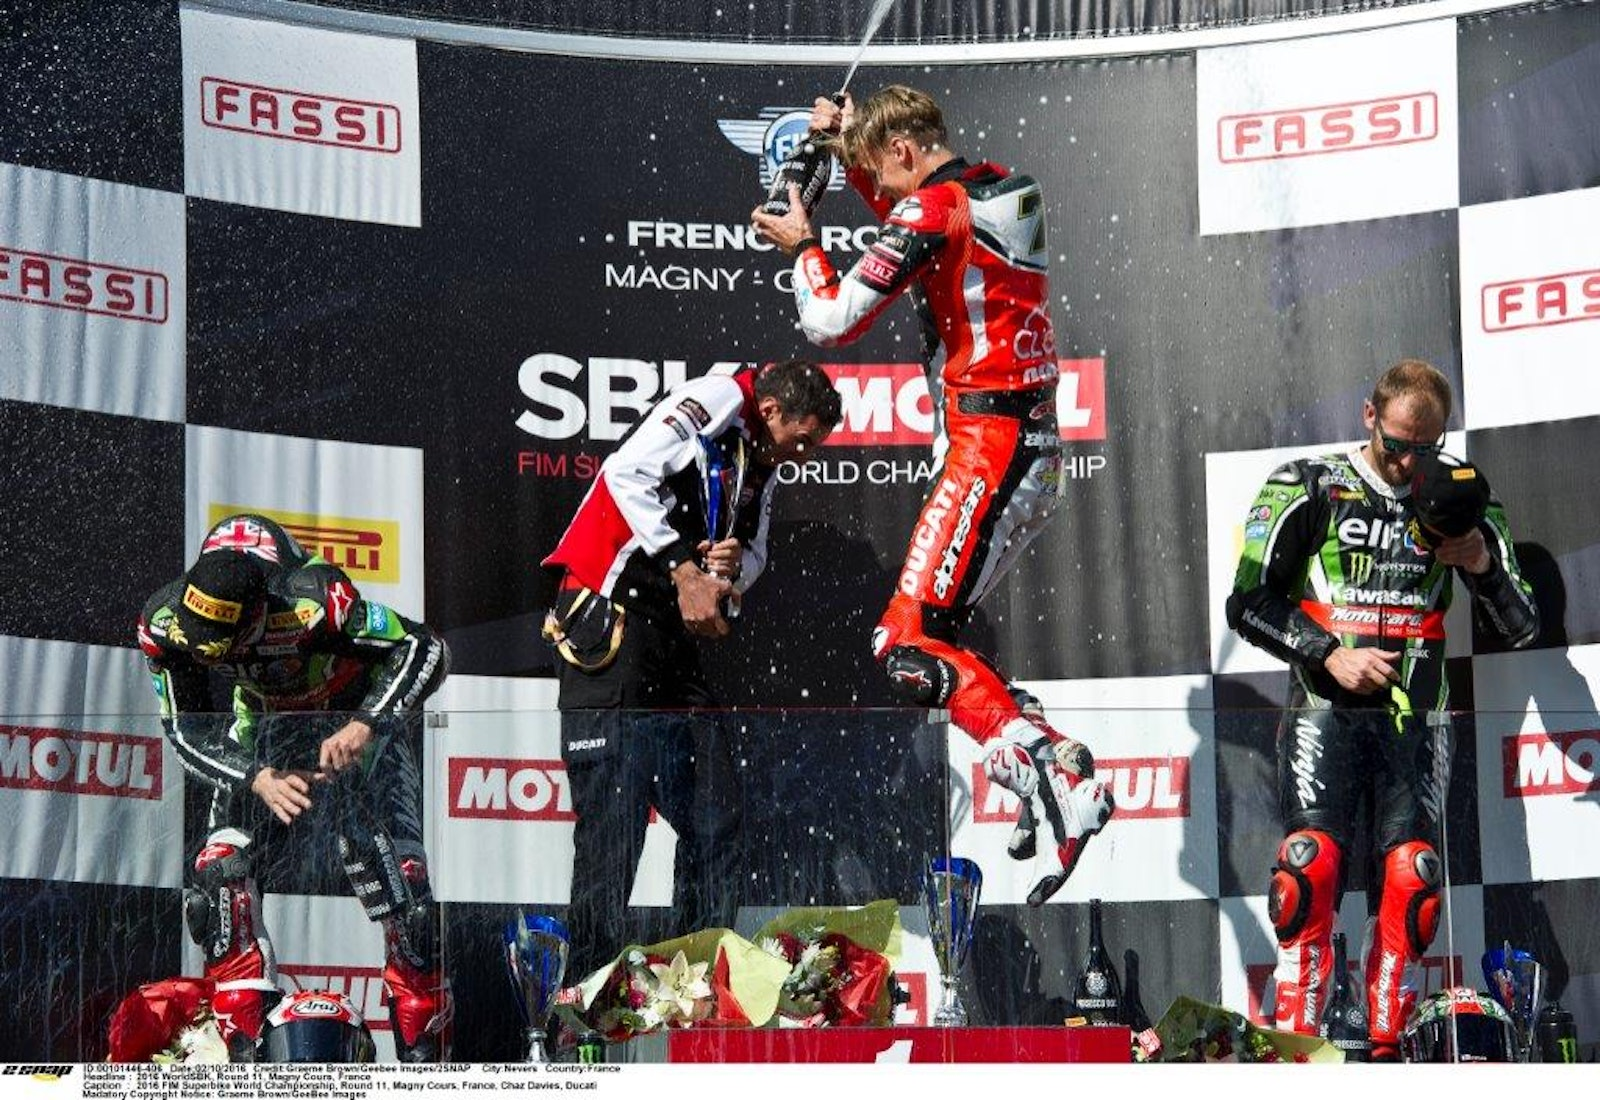 Podium delight for Davies and Ducati